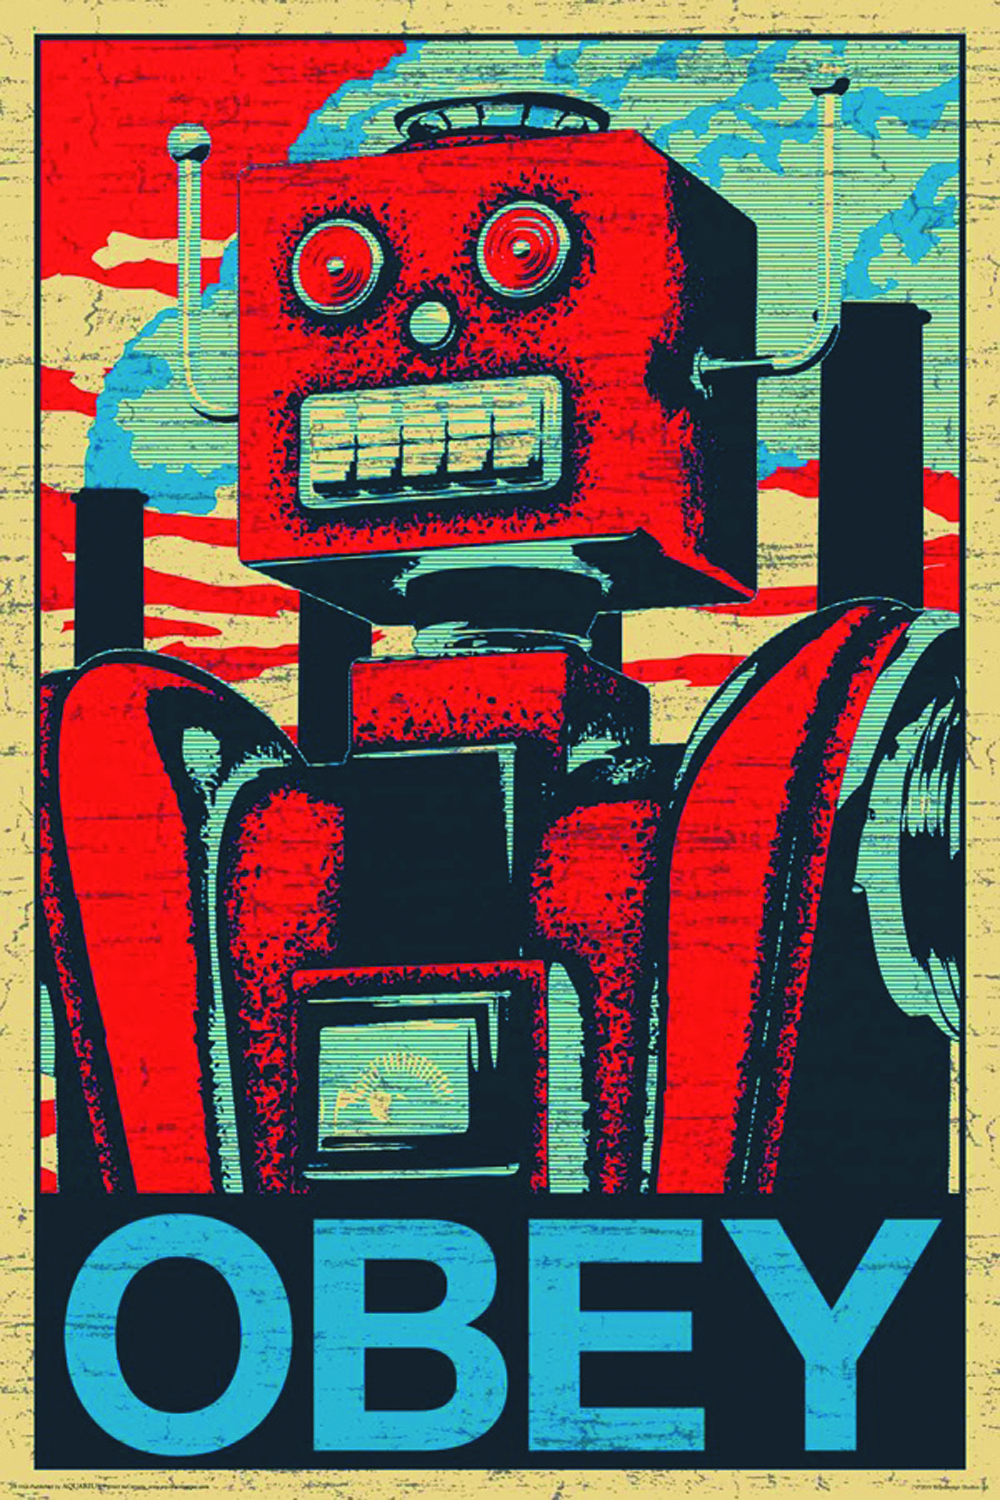 Kanye West Iphone Wallpaper Previewsworld Robot Obey Wall Poster C 1 1 2